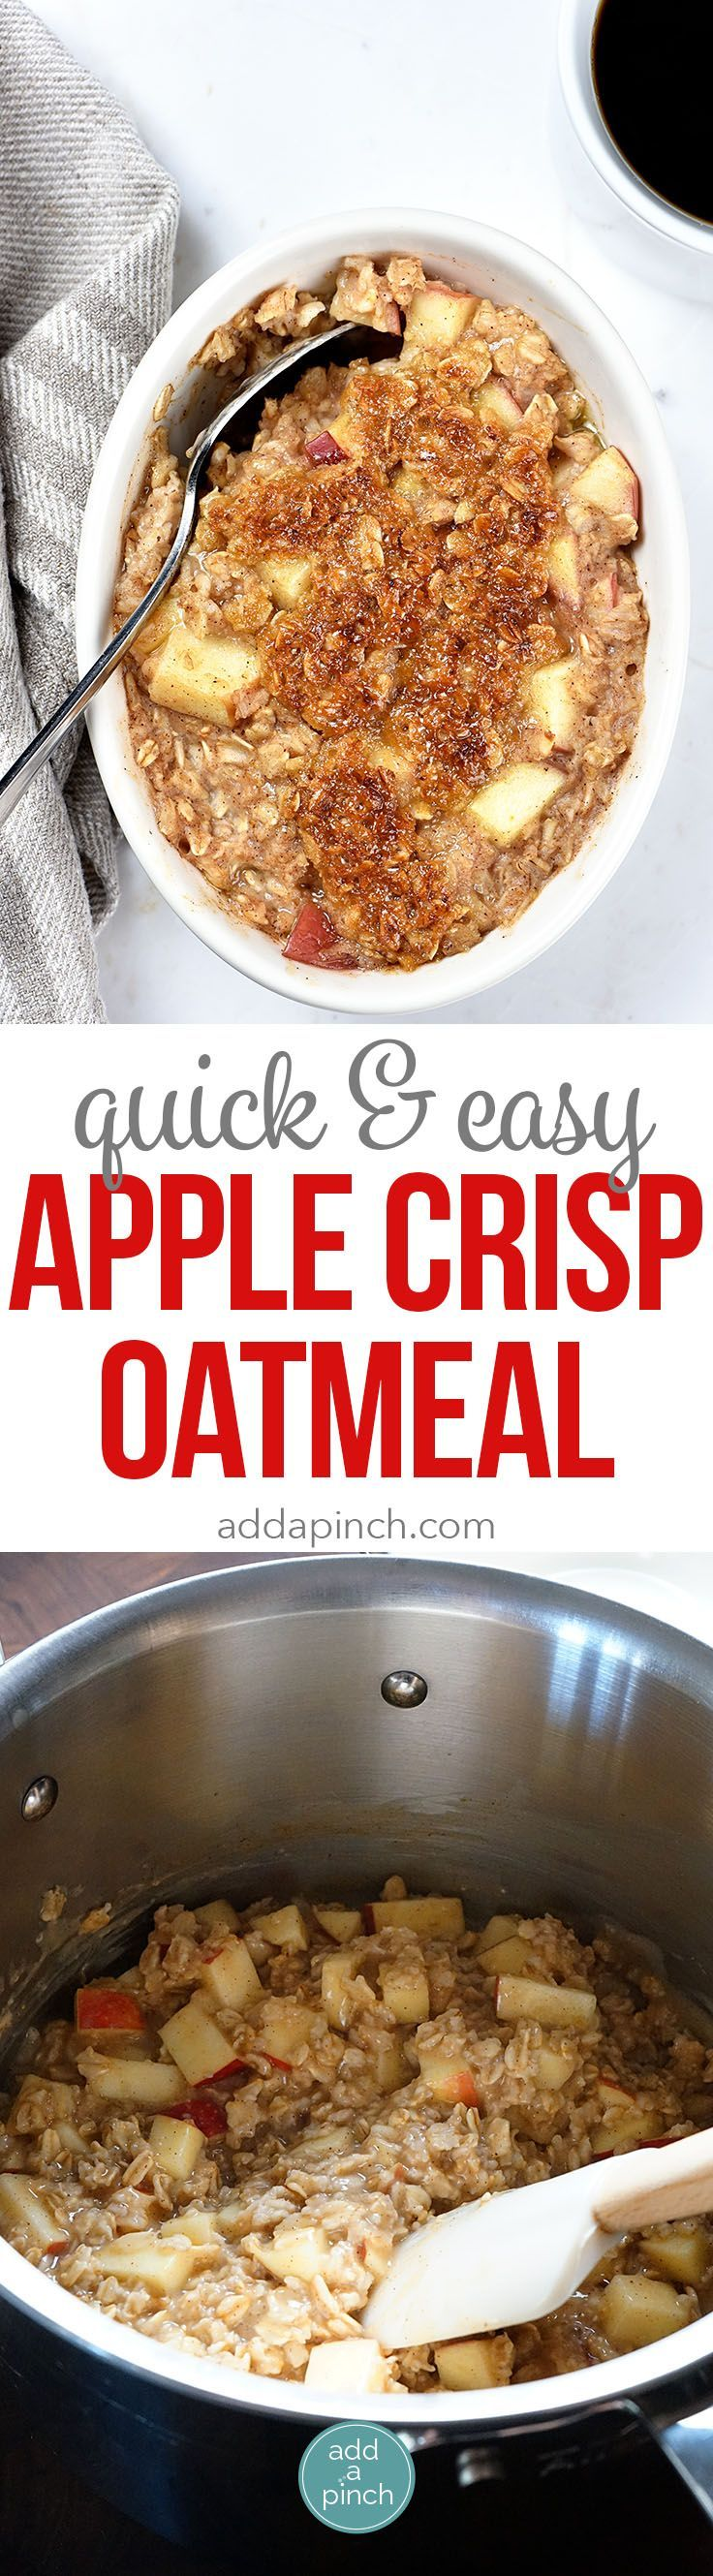 Apple Crisp Oatmeal - Apple Crisp Oatmeal is the perfect combination of everyone's favorite fall dessert and breakfast! Ready in minutes, my apple crisp oatmeal is definitely a family favorite! // http://addapinch.com